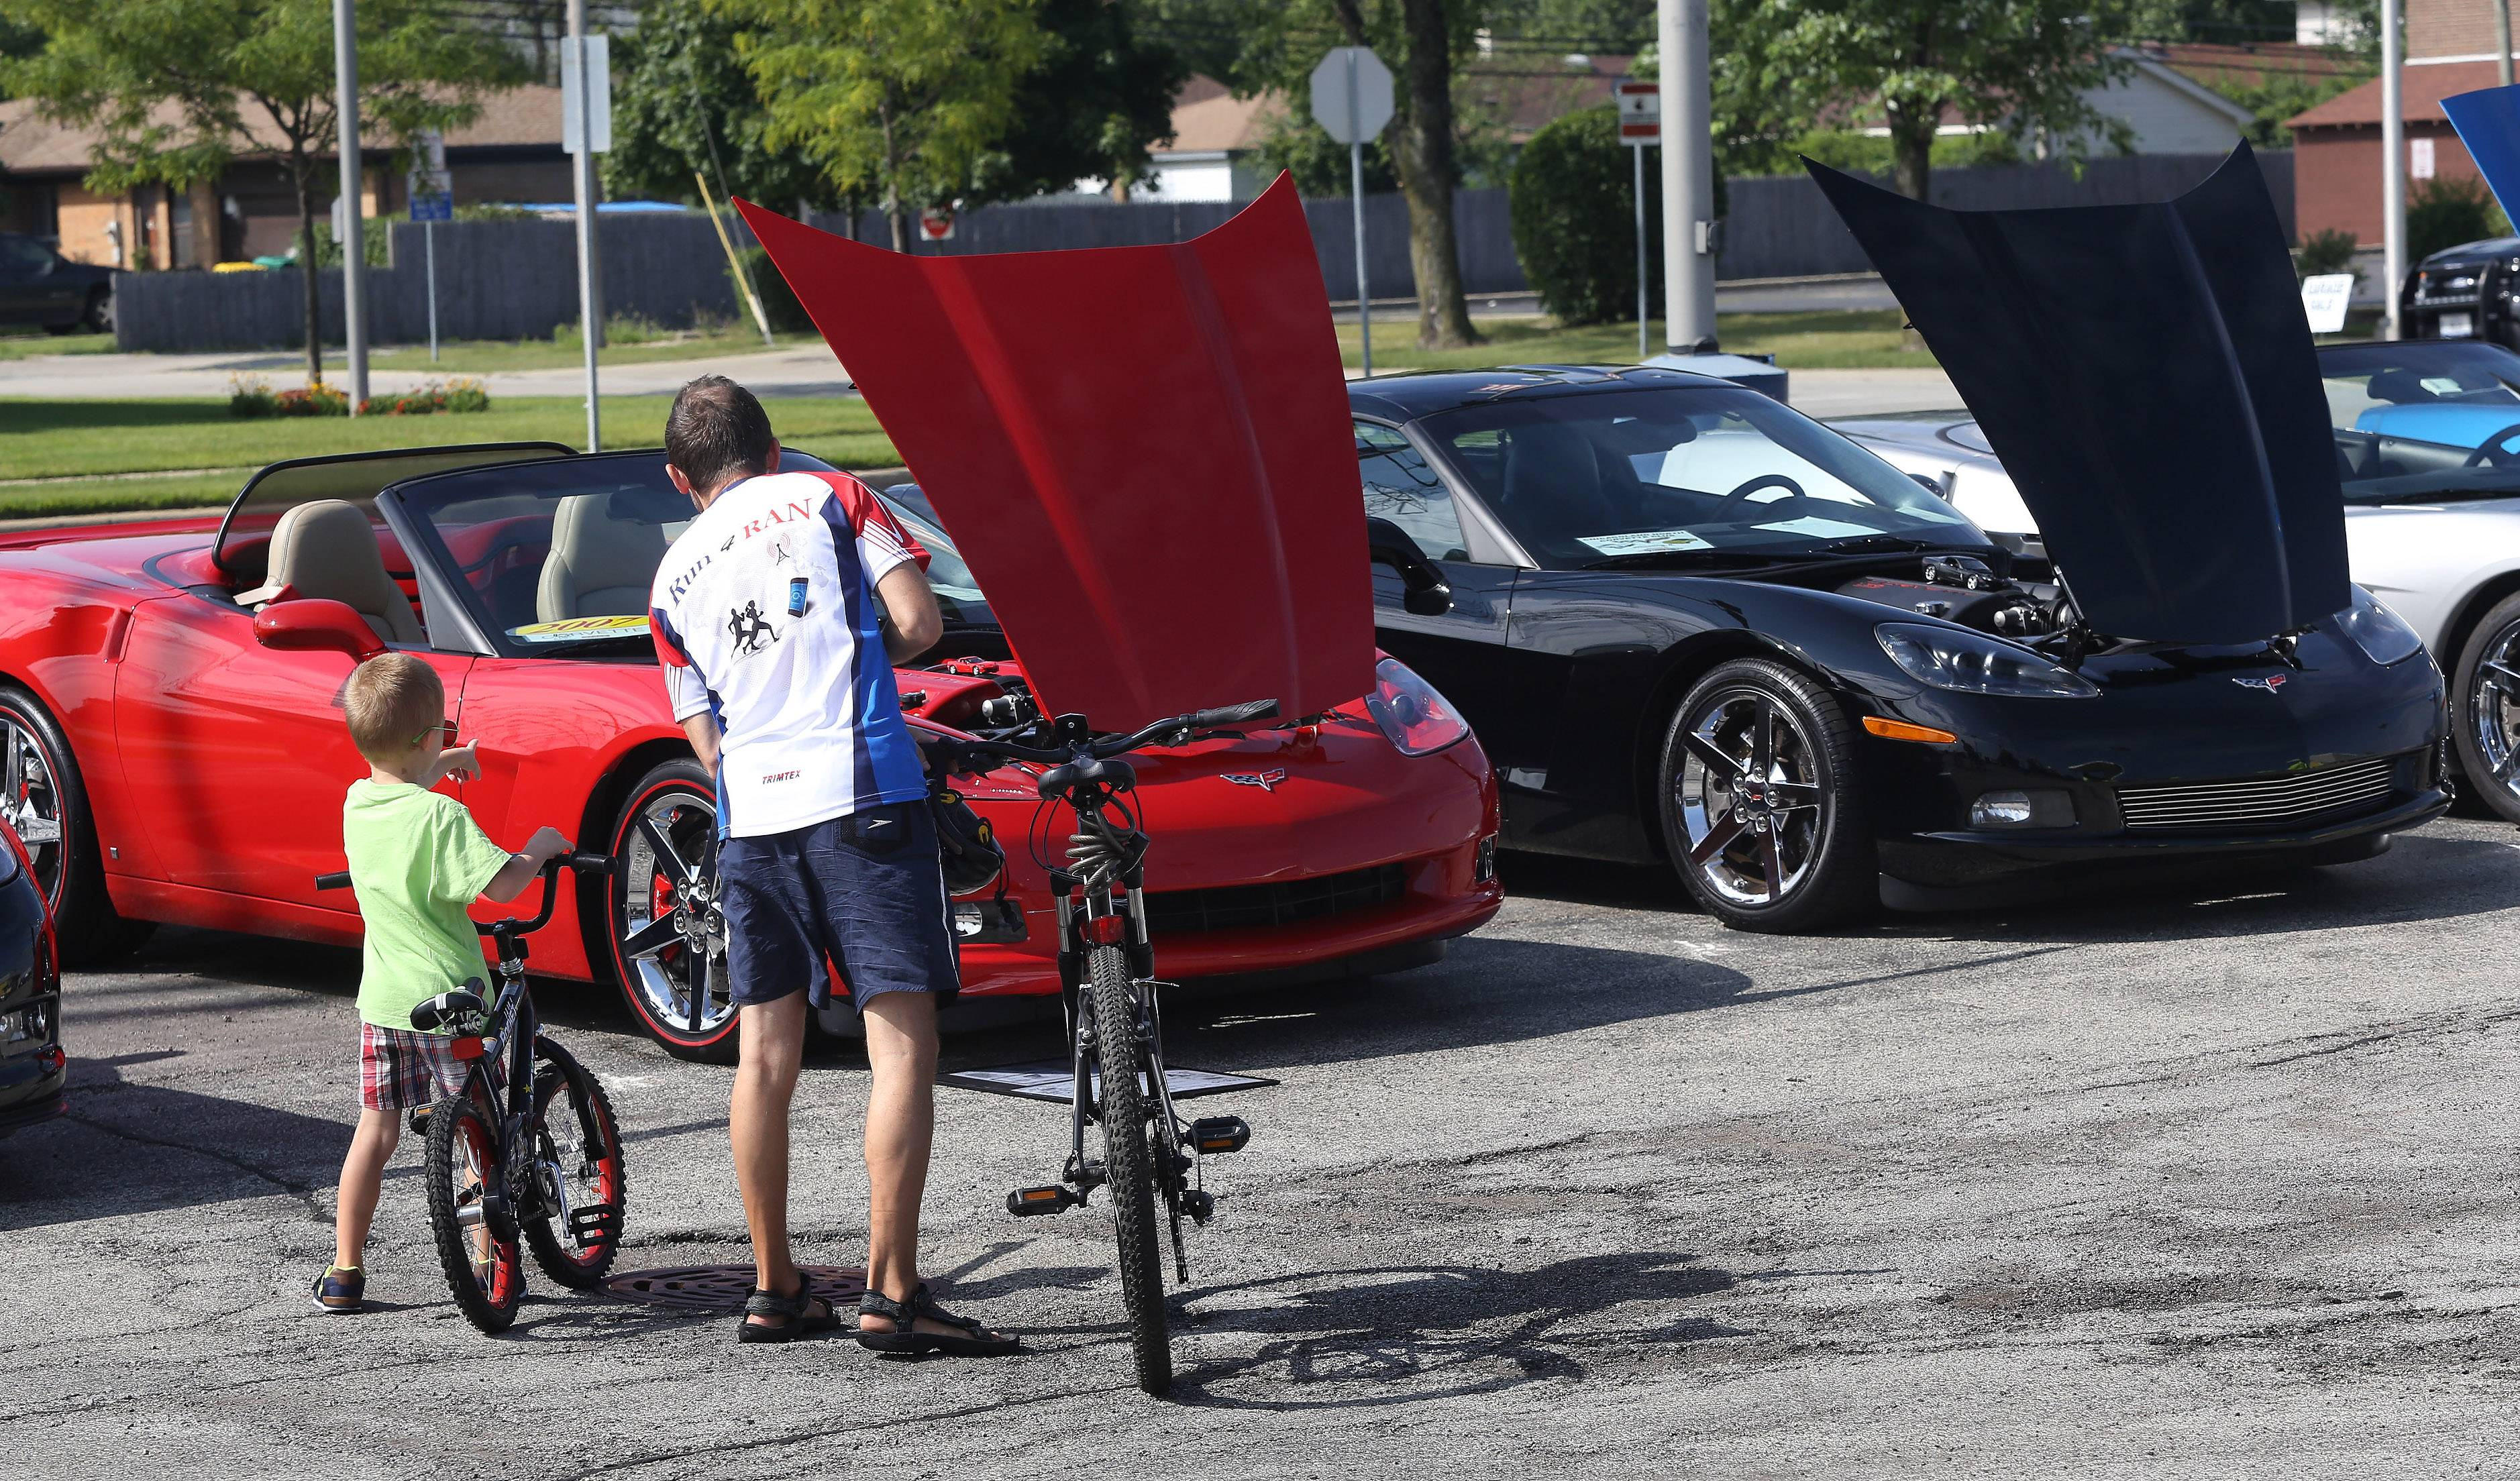 Wheeling residents Iwo Angelow and his son, Jakub, 5, look at several Corvettes during the 9th Annual All-Corvette Show Sunday at Bill Stasek Chevrolet in Wheeling. The show was sponsored by the Chicagoland North Corvette Club and featured over 100 Corvettes from as early as 1960.